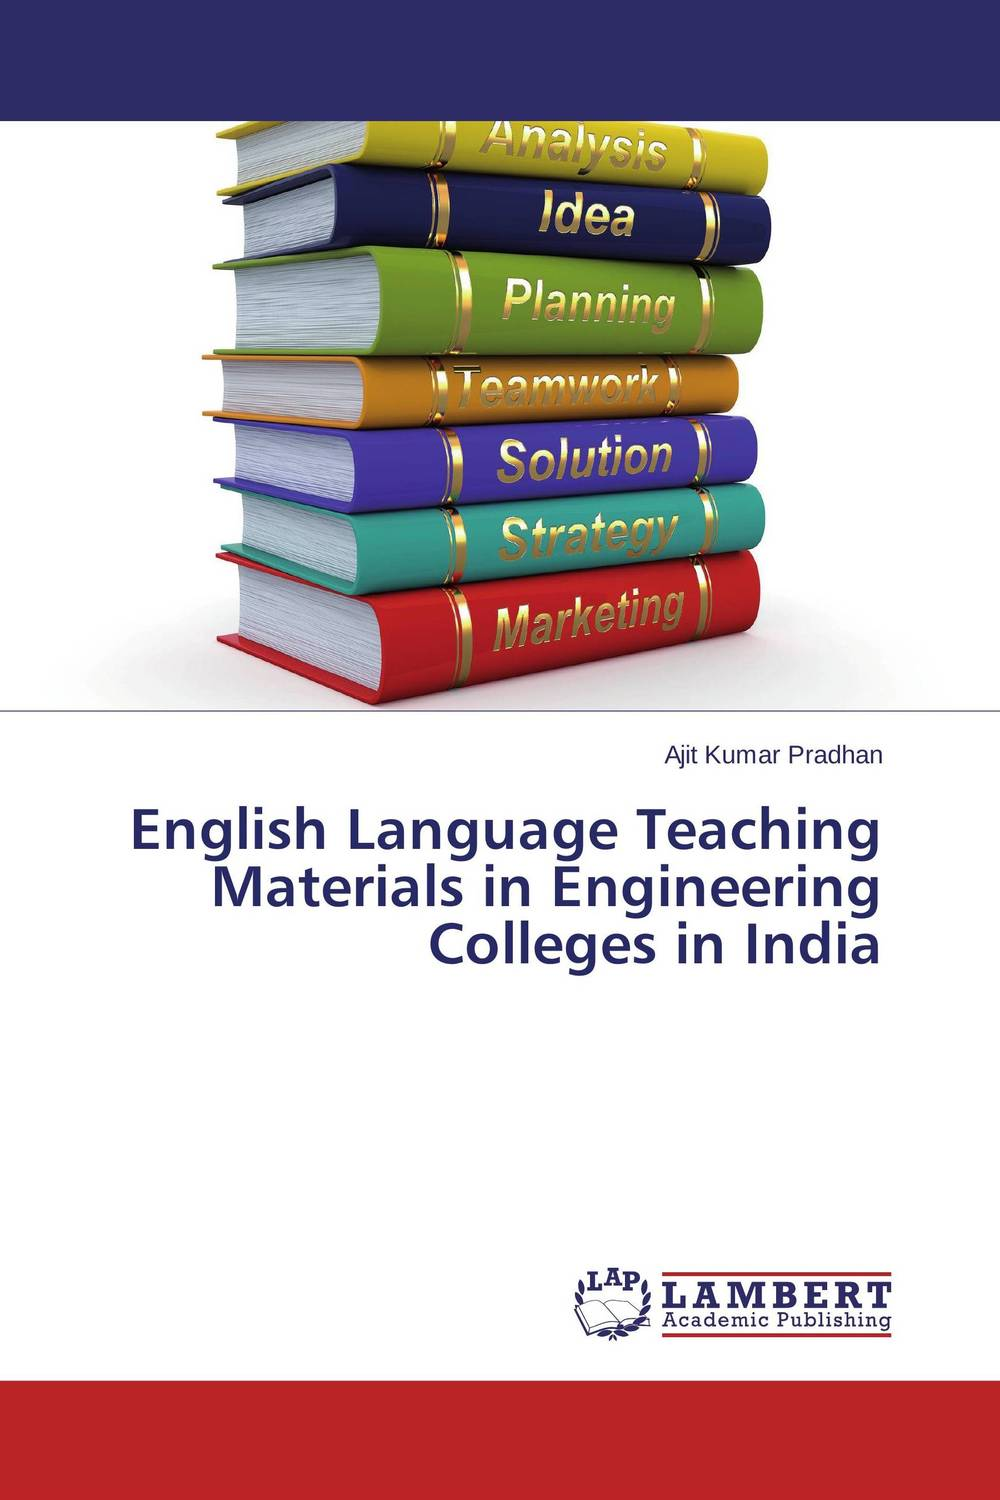 English Language Teaching Materials in Engineering Colleges in India the use of instructional materials in the pedagogy of english